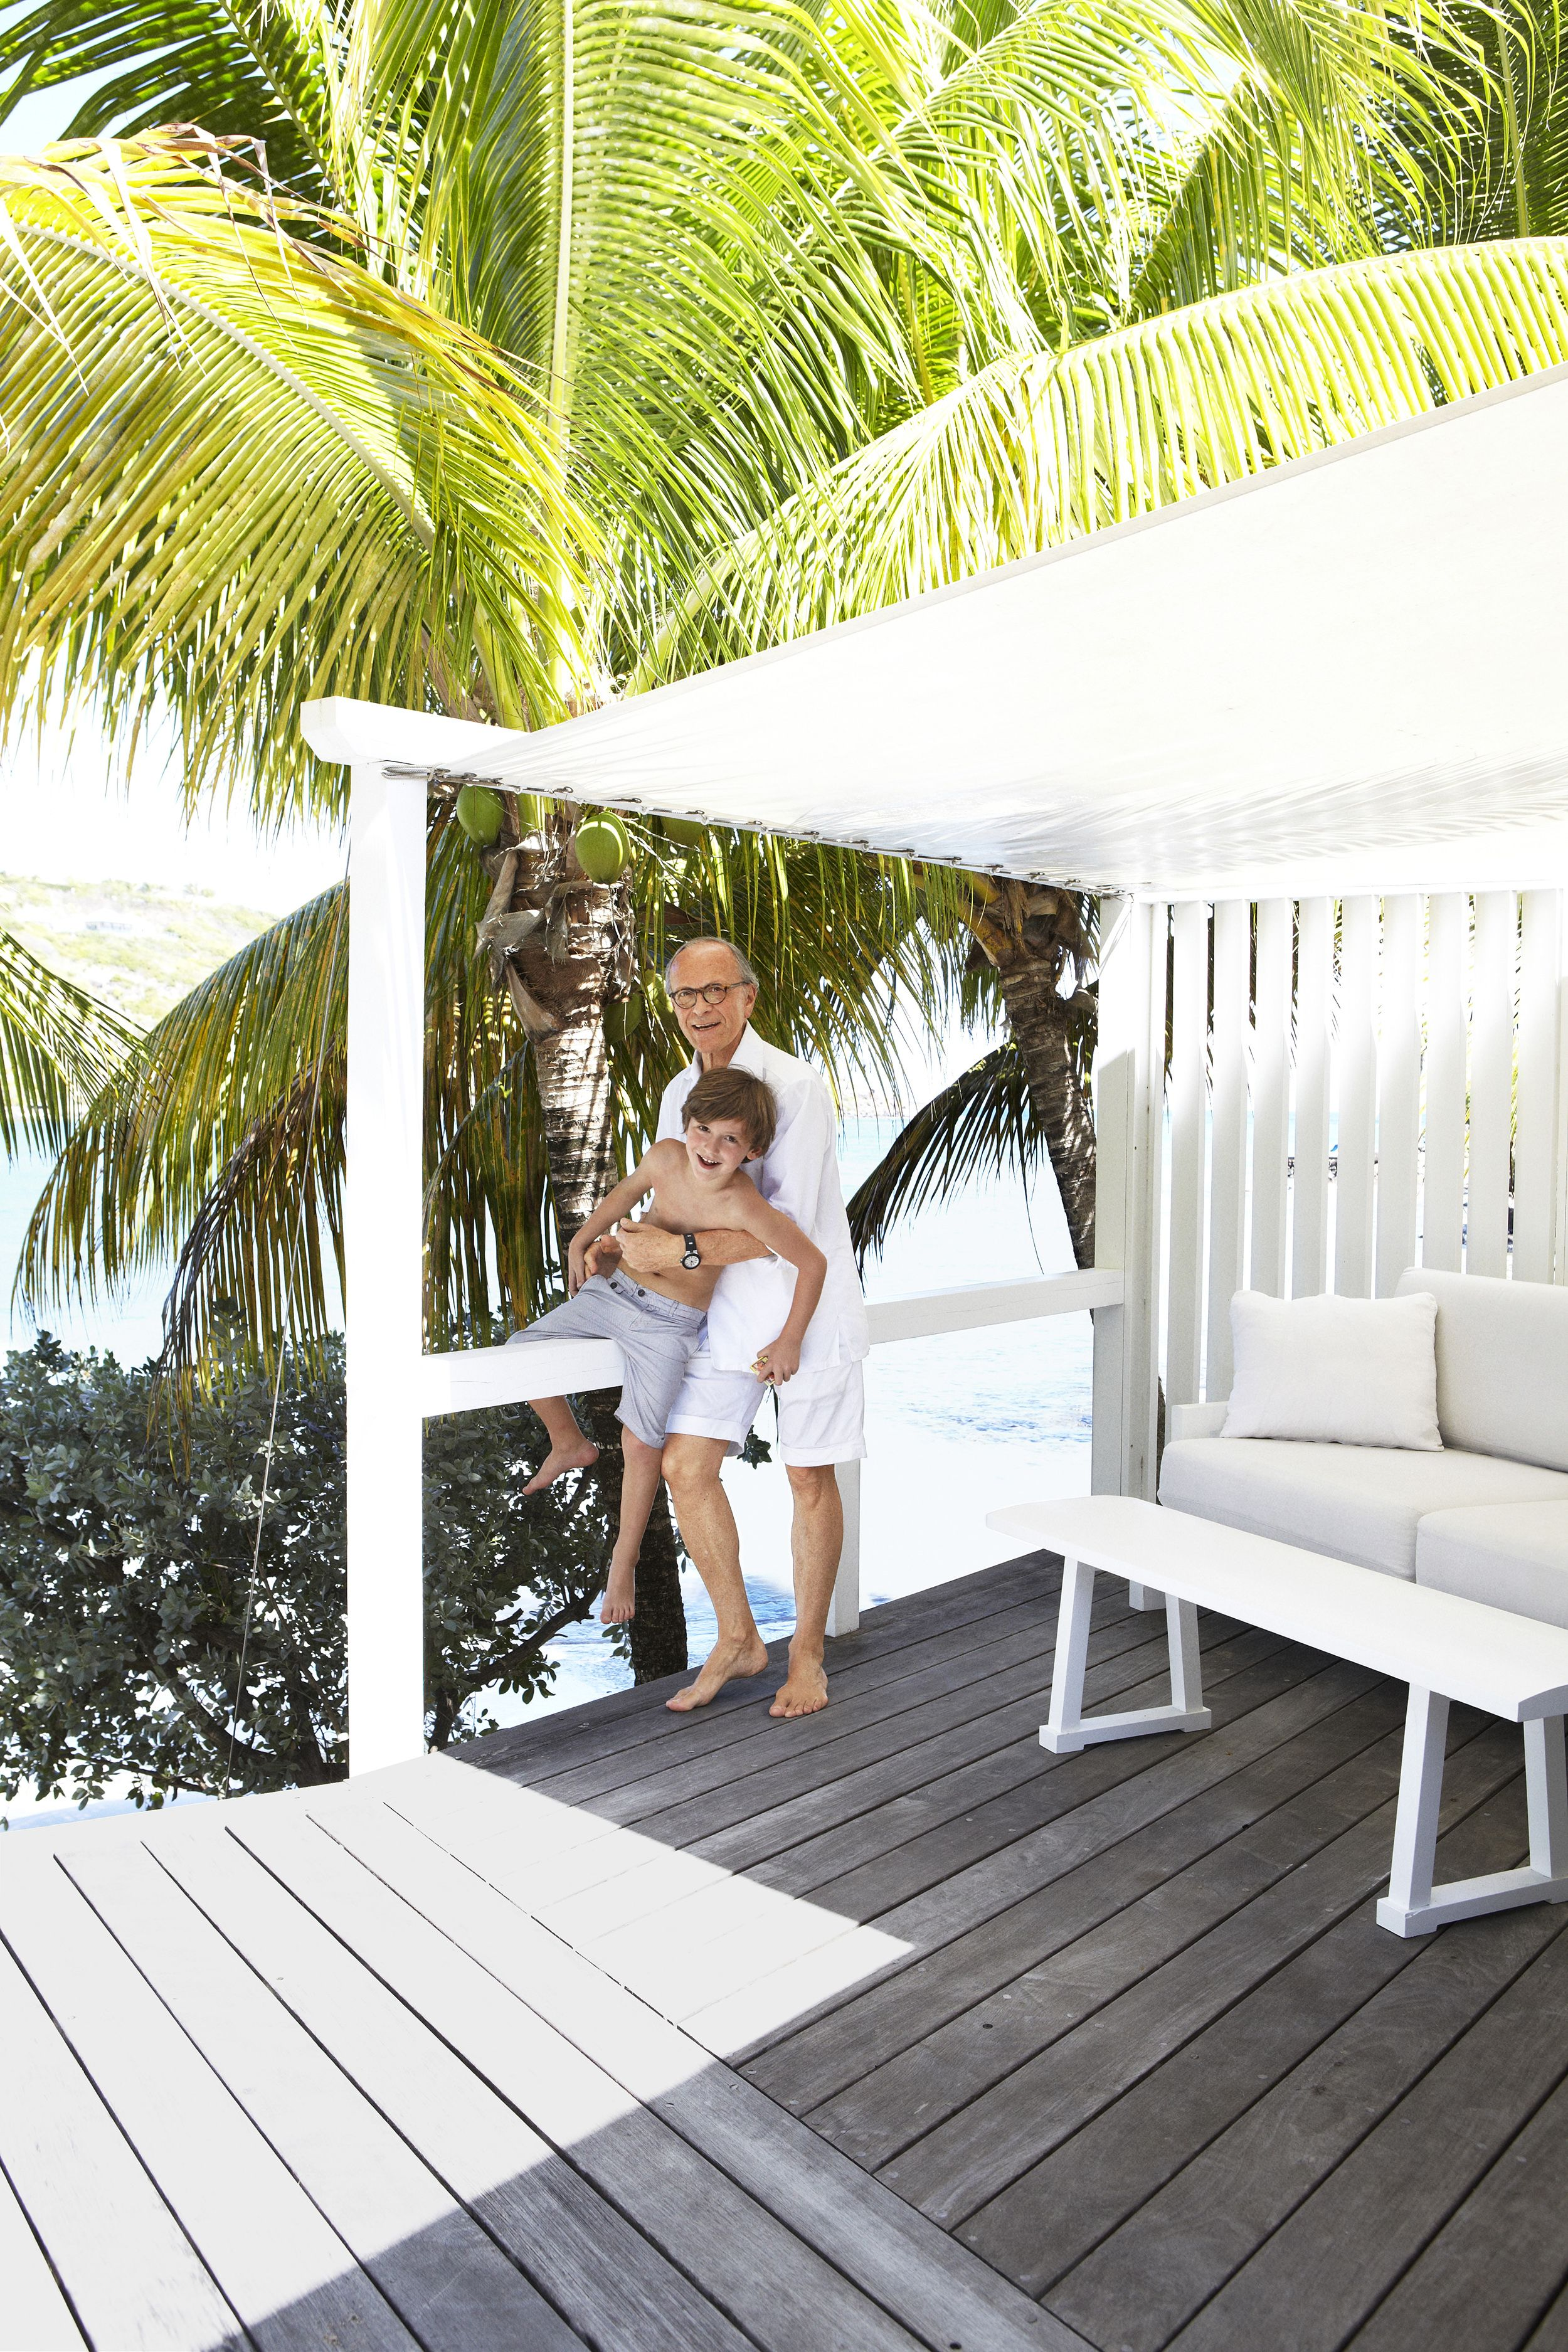 This Simple Beach House Was Designer Christian Liaigre's St. Barts Home